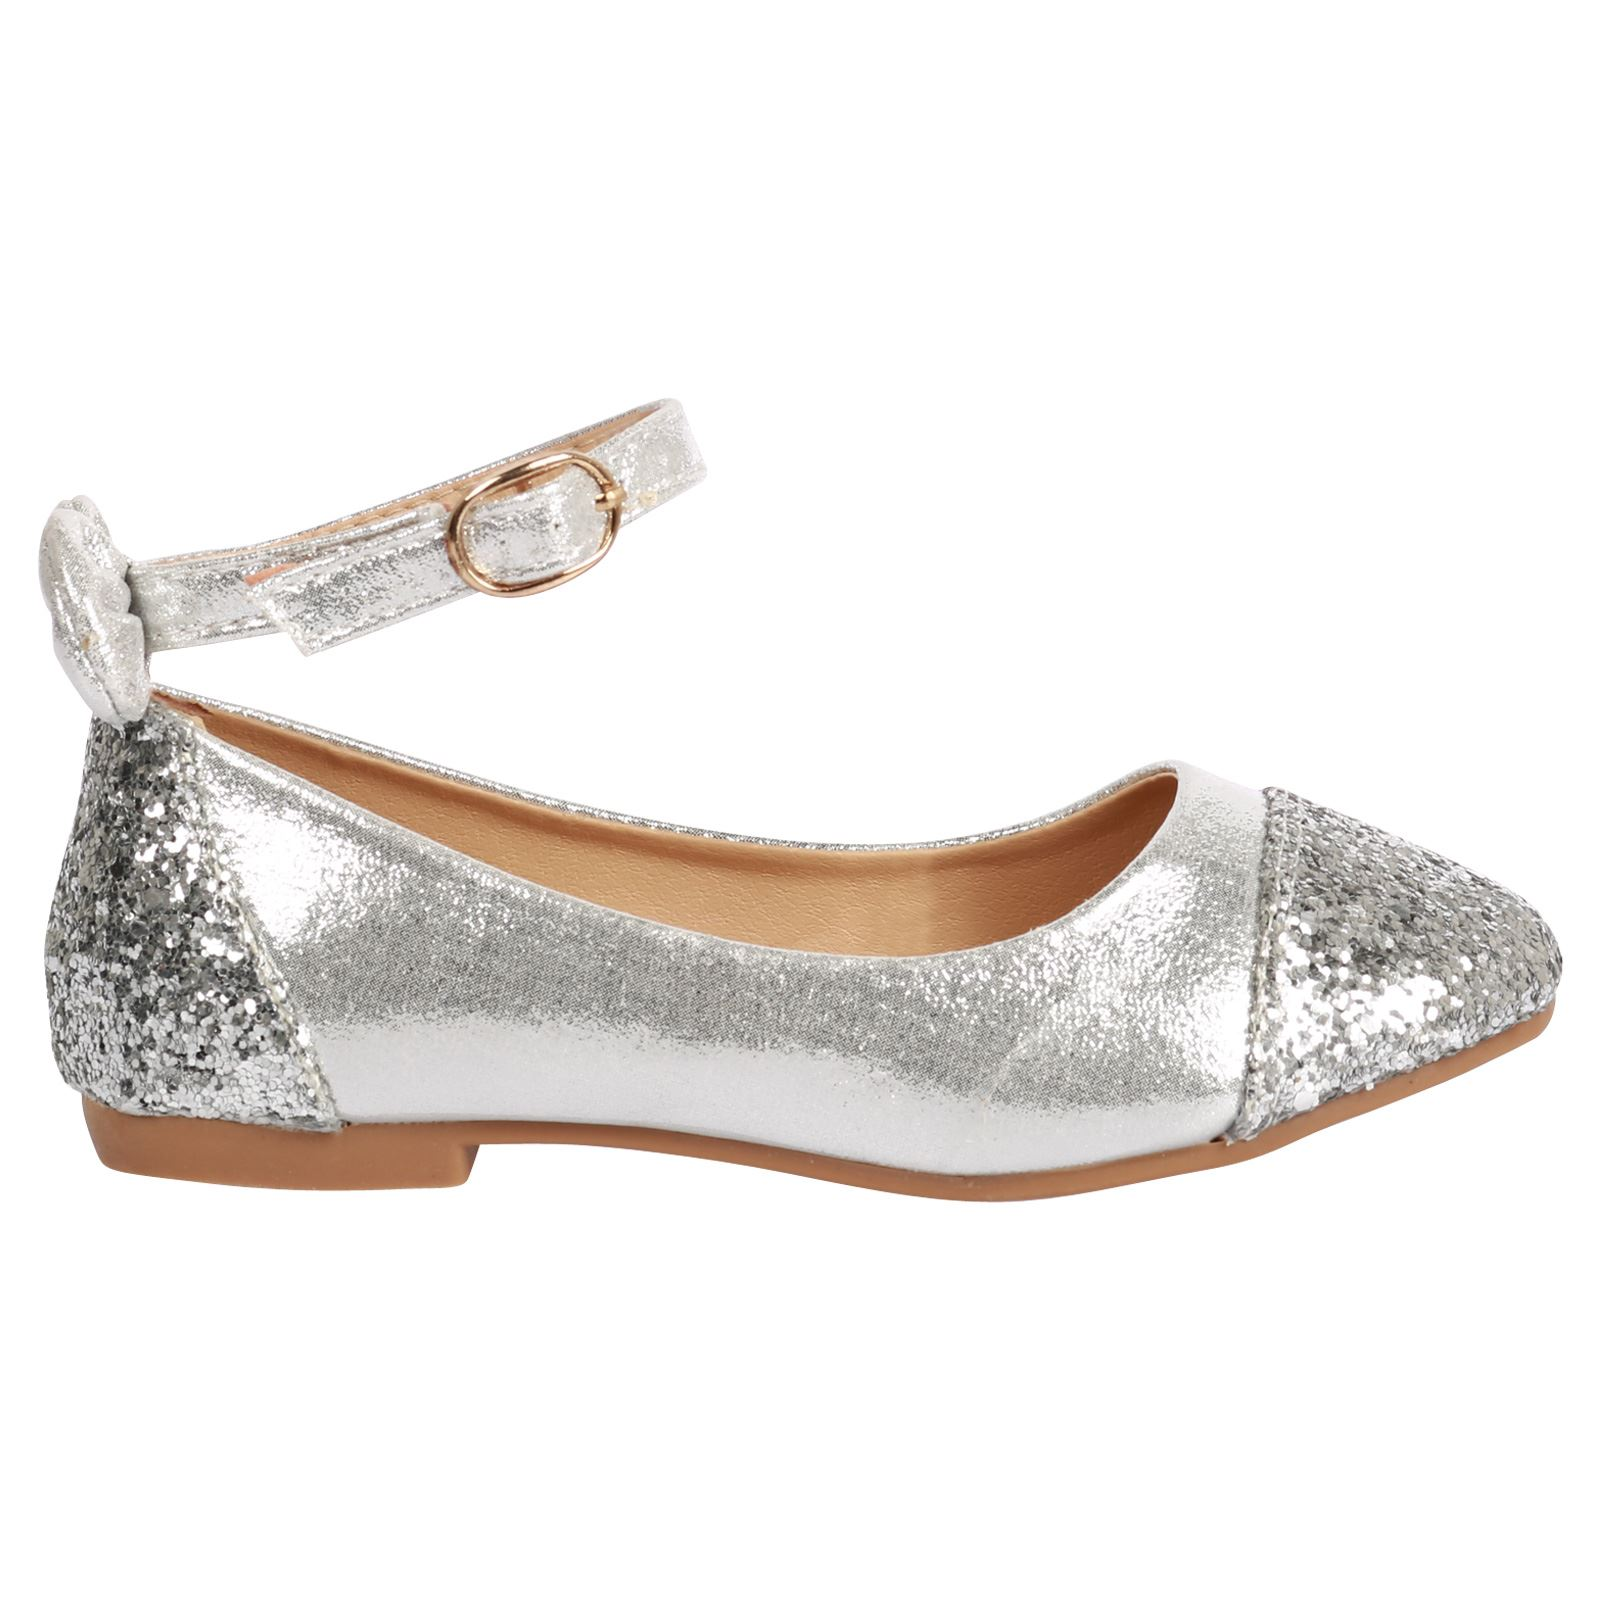 Bridal Shoes Jb: Buttercup Girls Kids Flats Glitter Bow Detail Ballerina